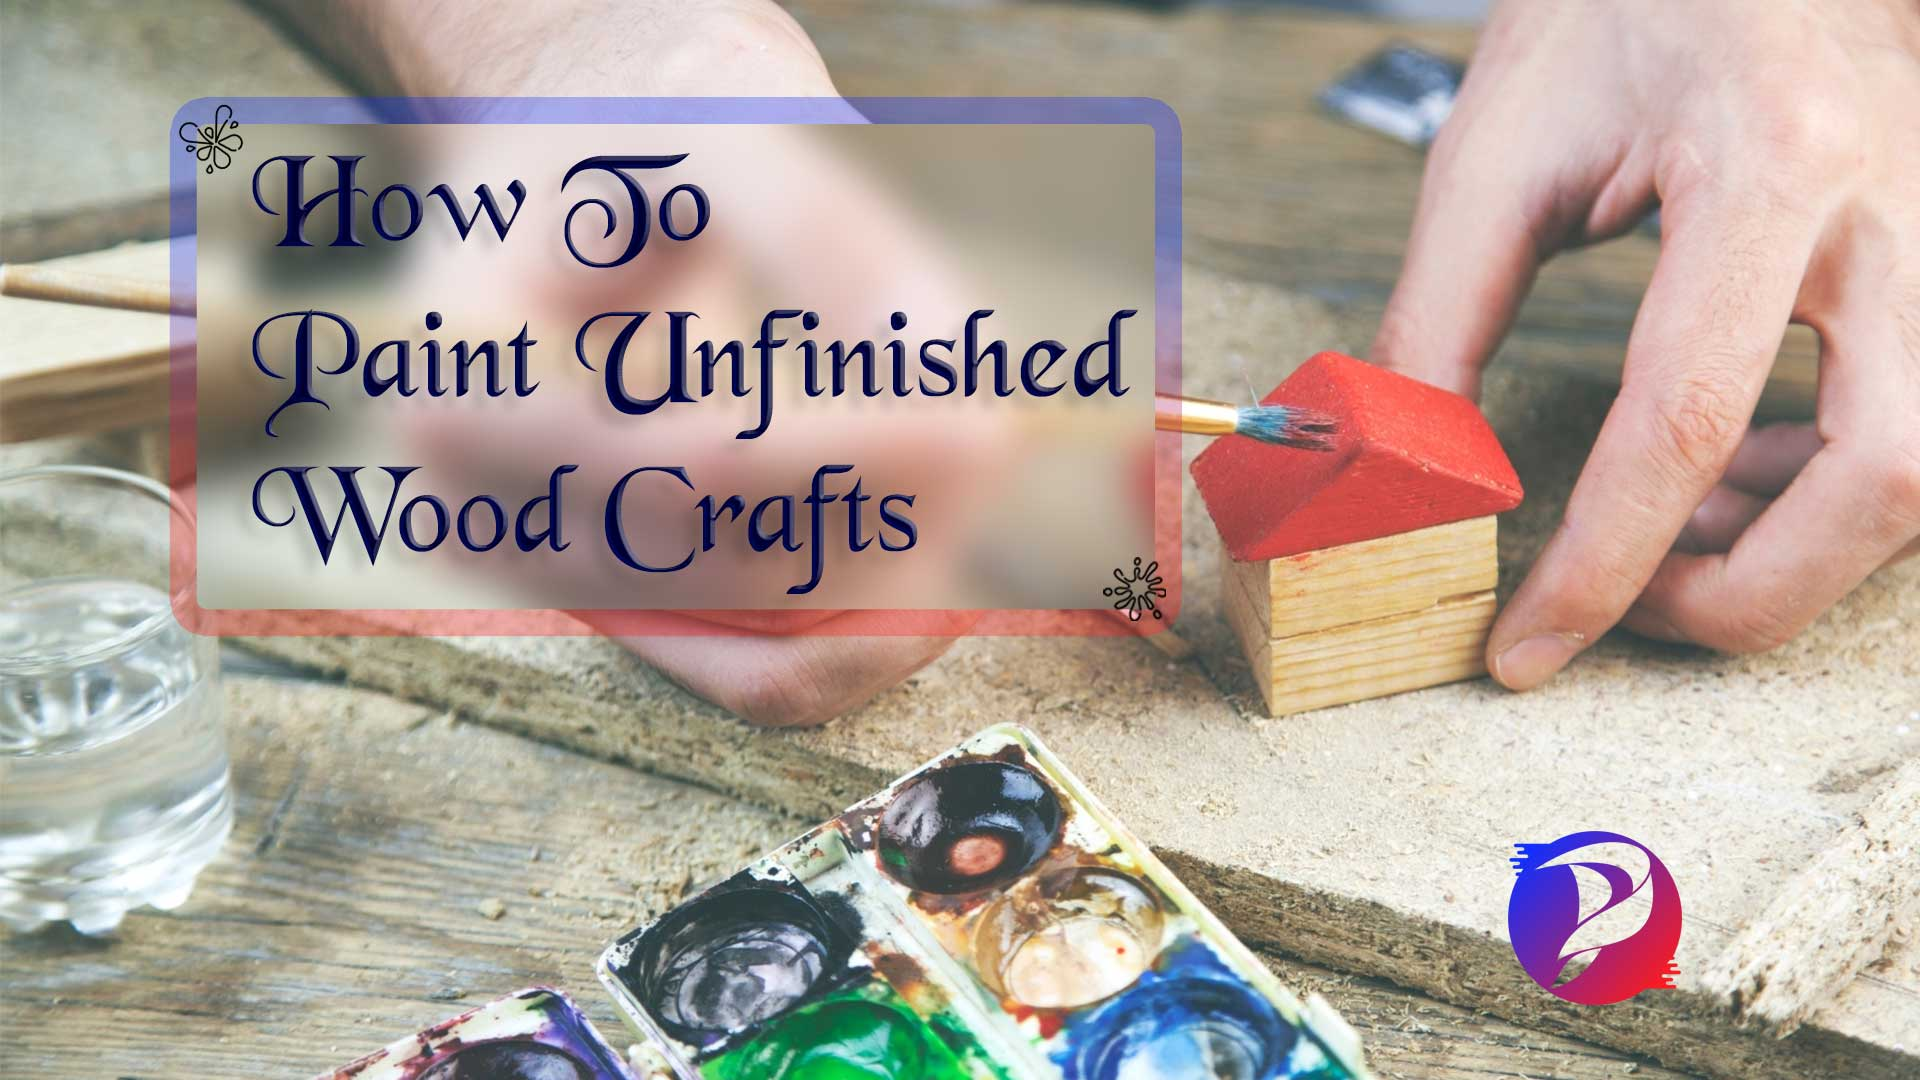 How To Paint Unfinished Wood Crafts